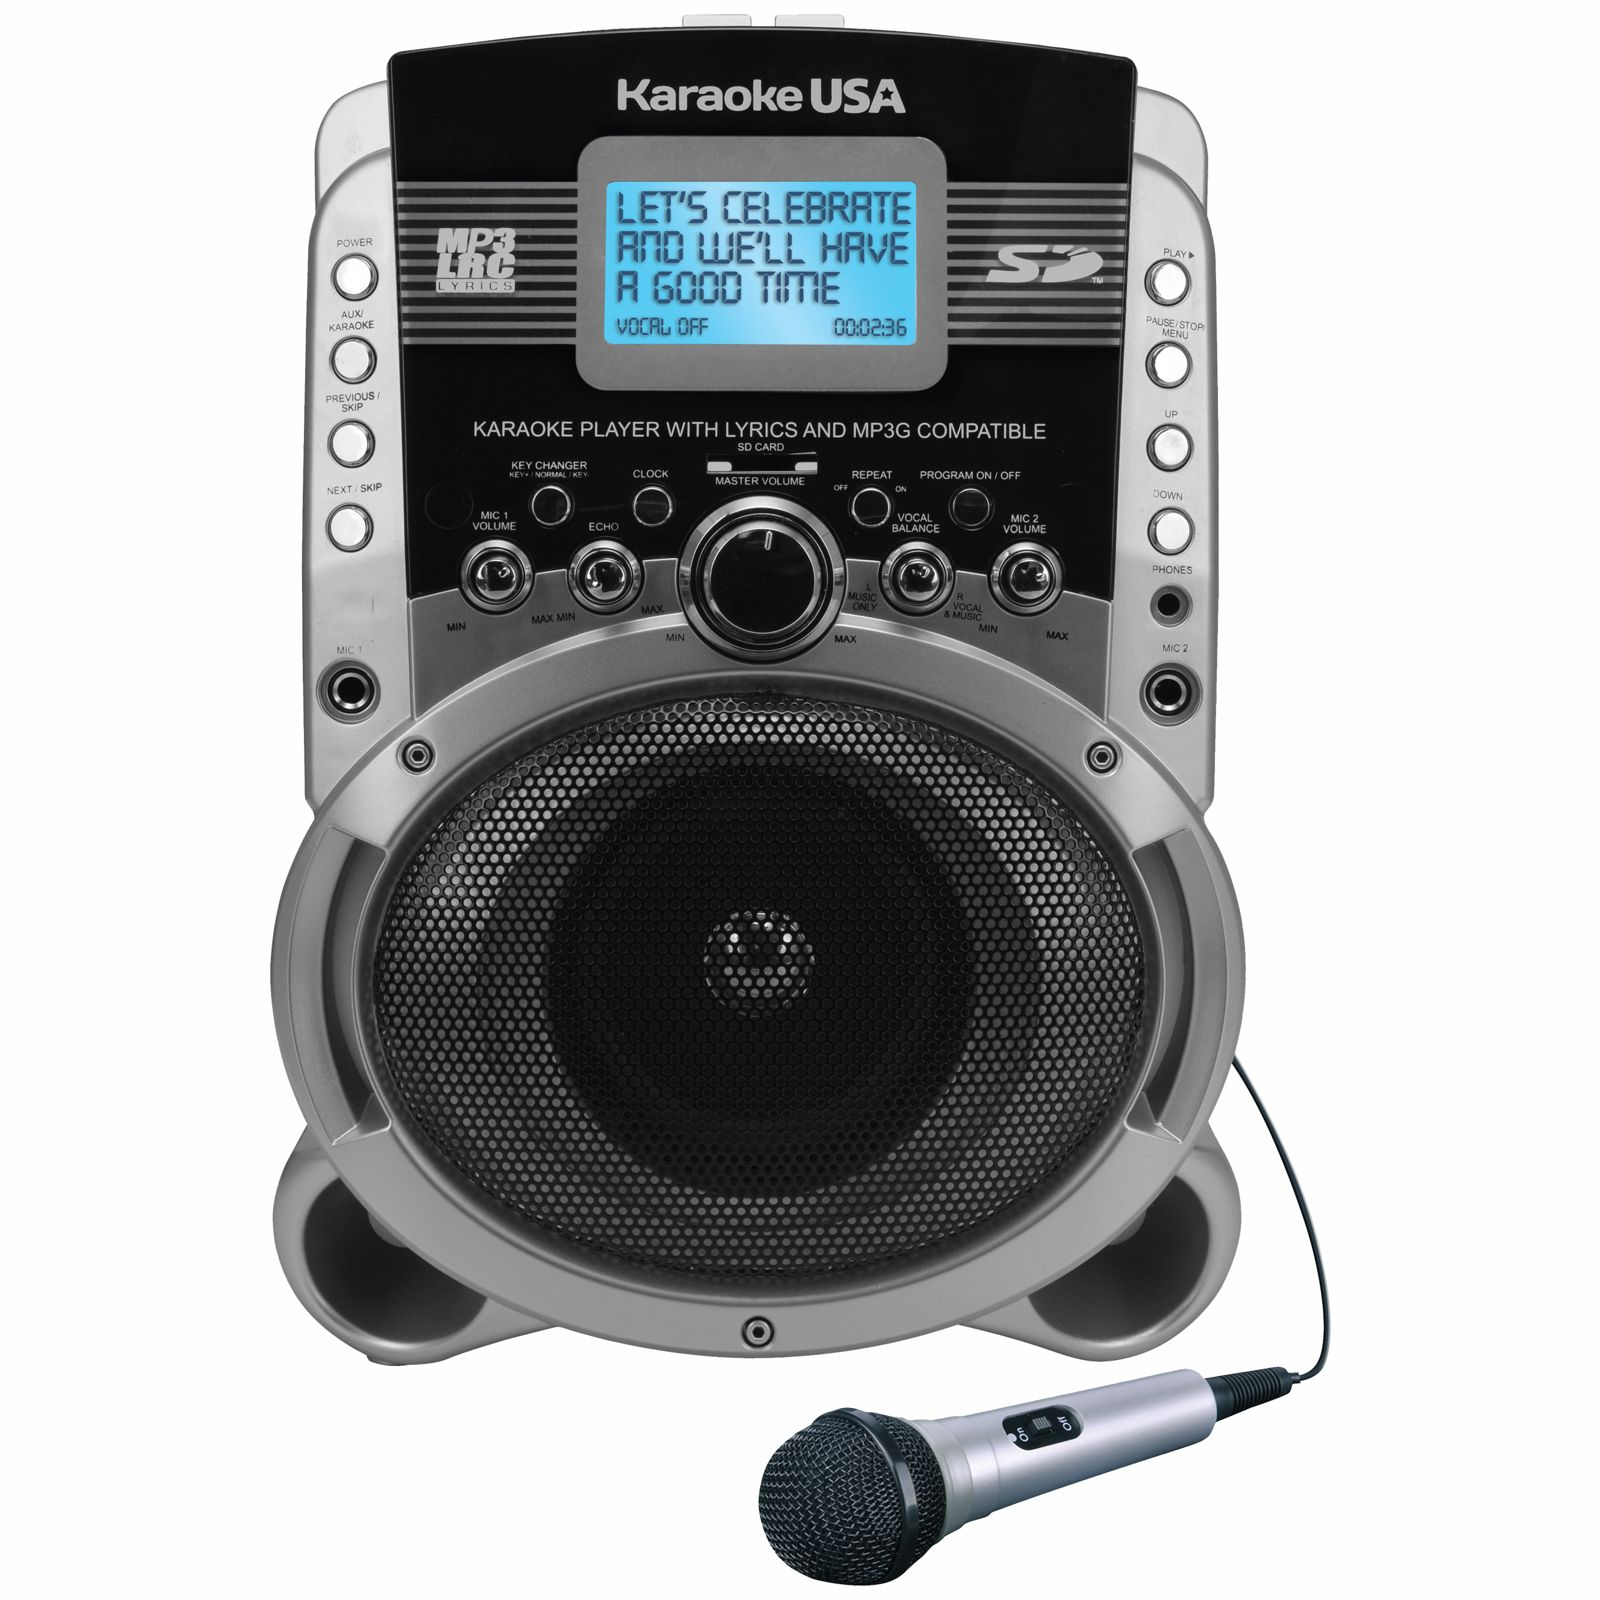 SD519 - Portable Karaoke MP3+G Player with Video Output